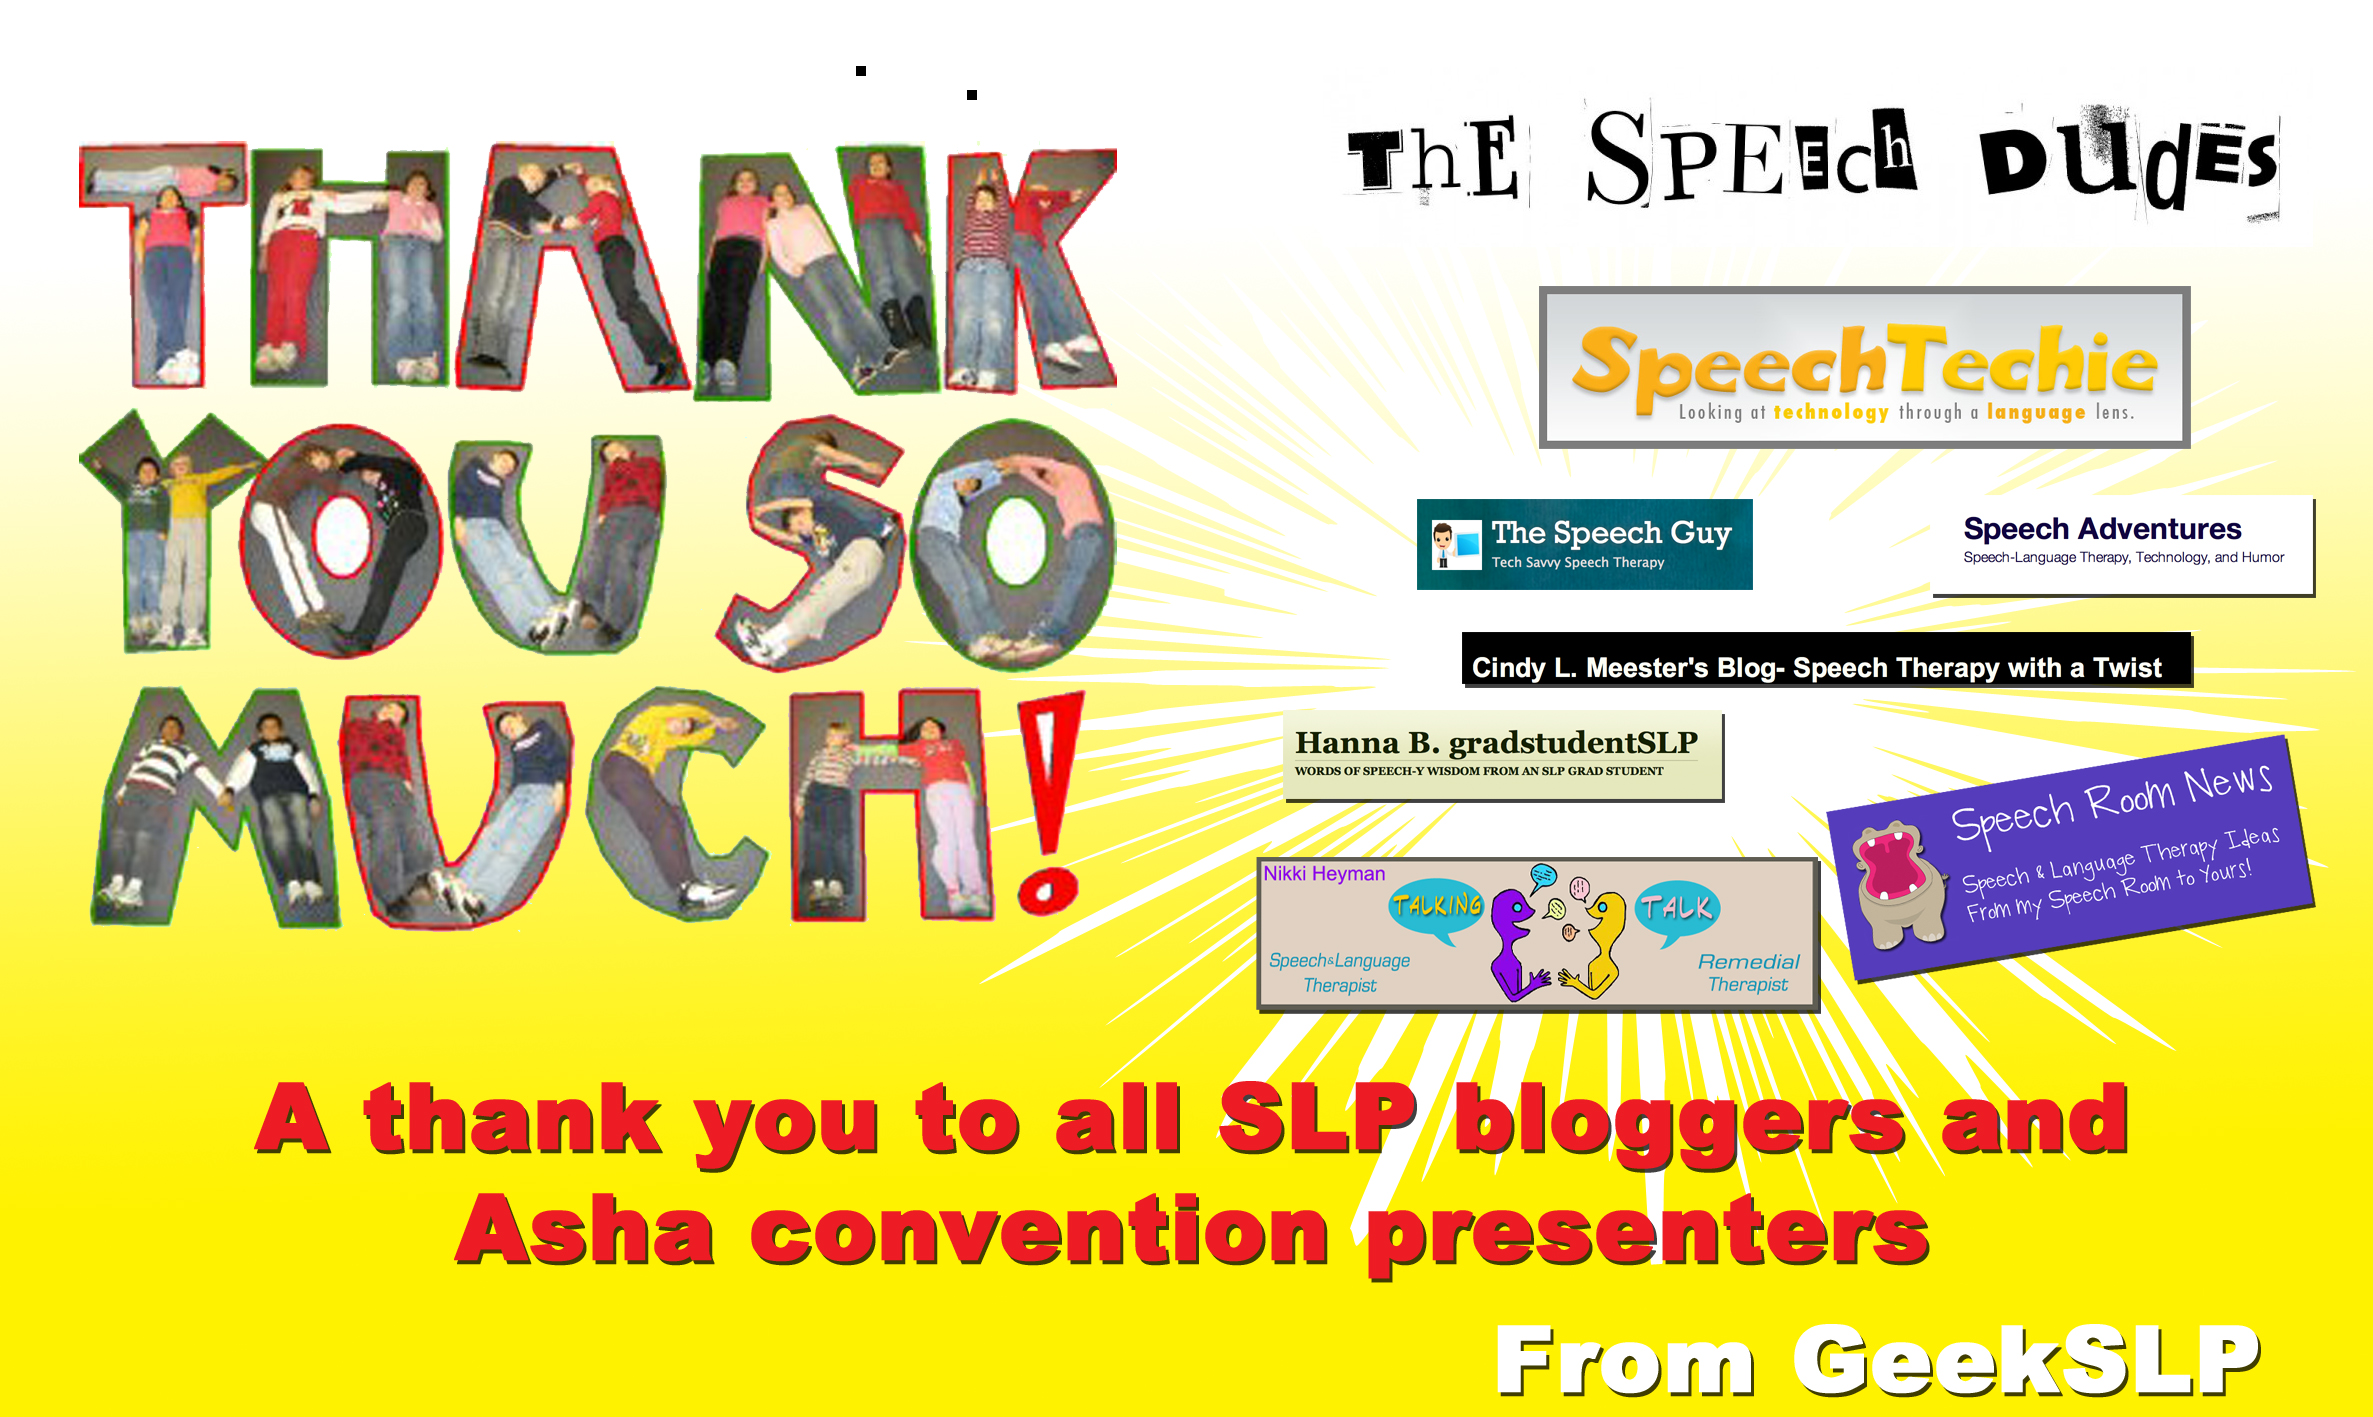 A thank you to all SLP bloggers and Asha convention presenters